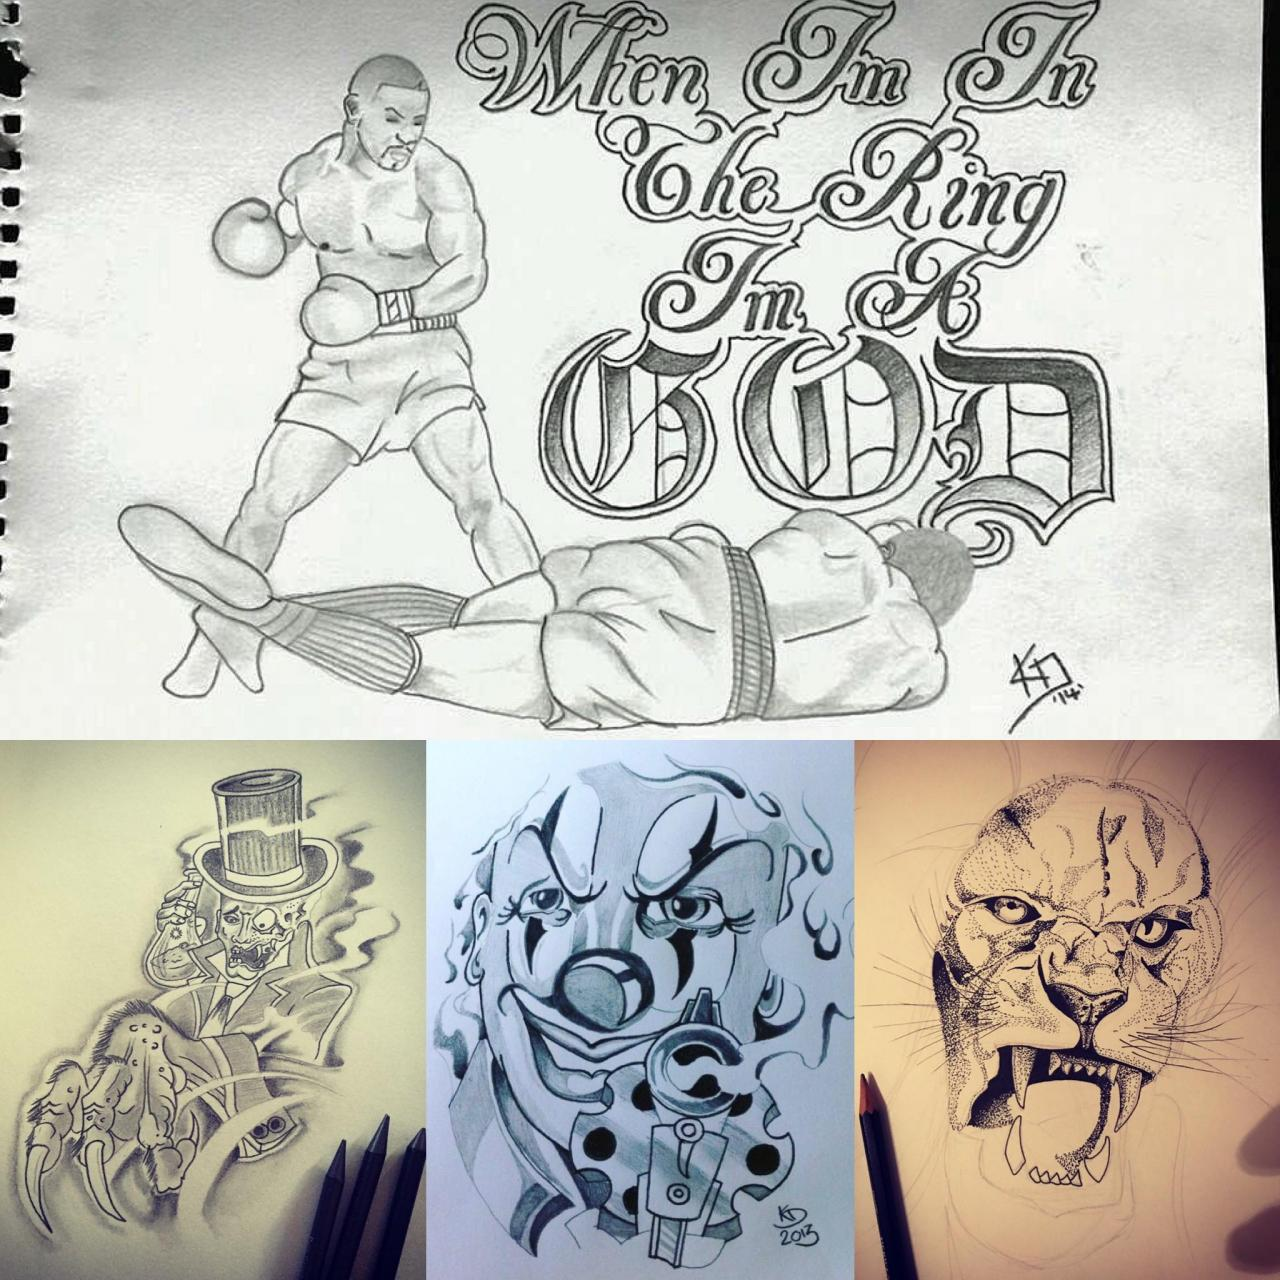 Found some old ass drawings from 2013/14 😂 my love for tattoos really does go back further than I remember 💉🎨🖤